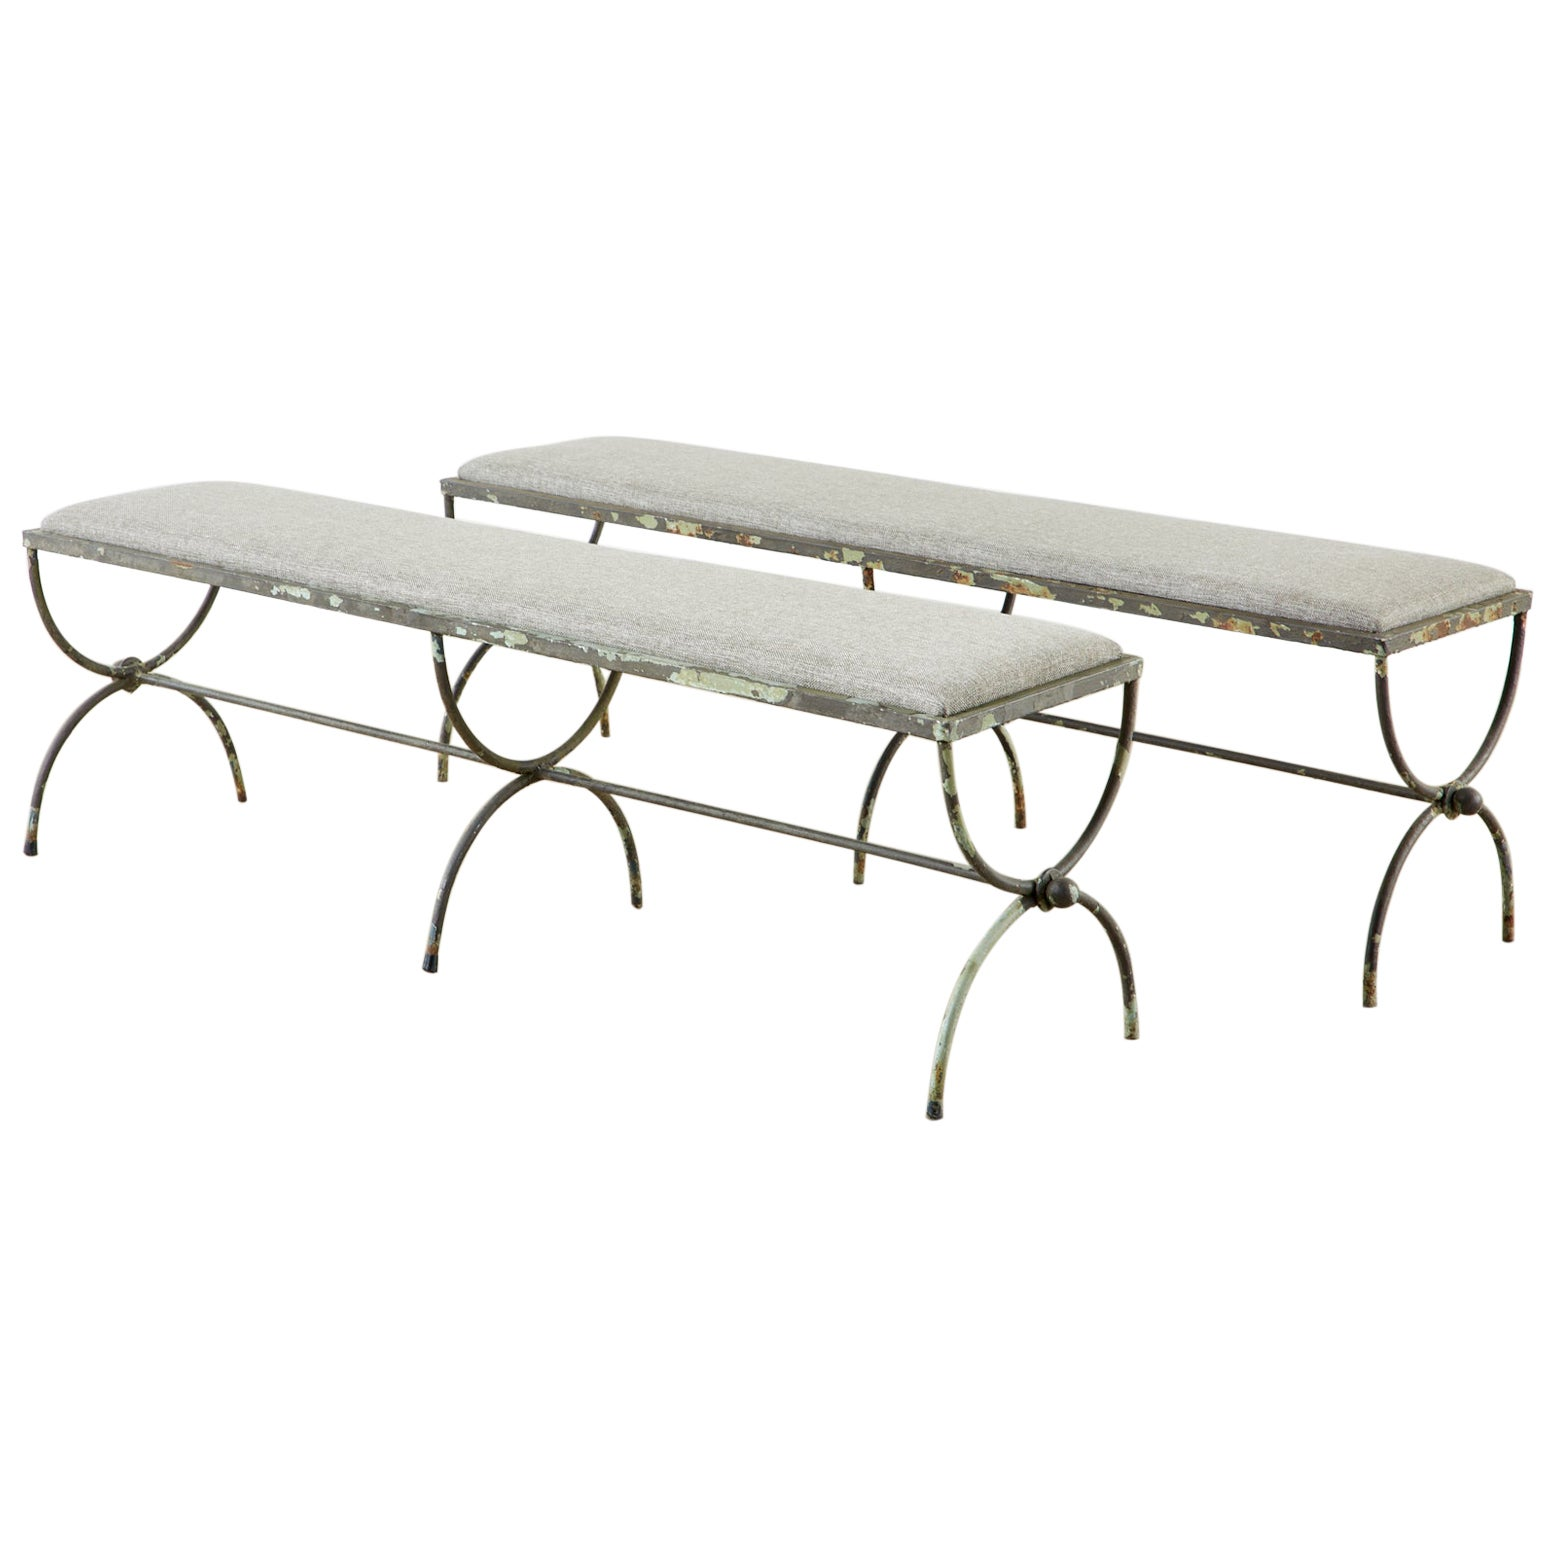 Pair of Neoclassical Style French Iron Curule Leg Benches